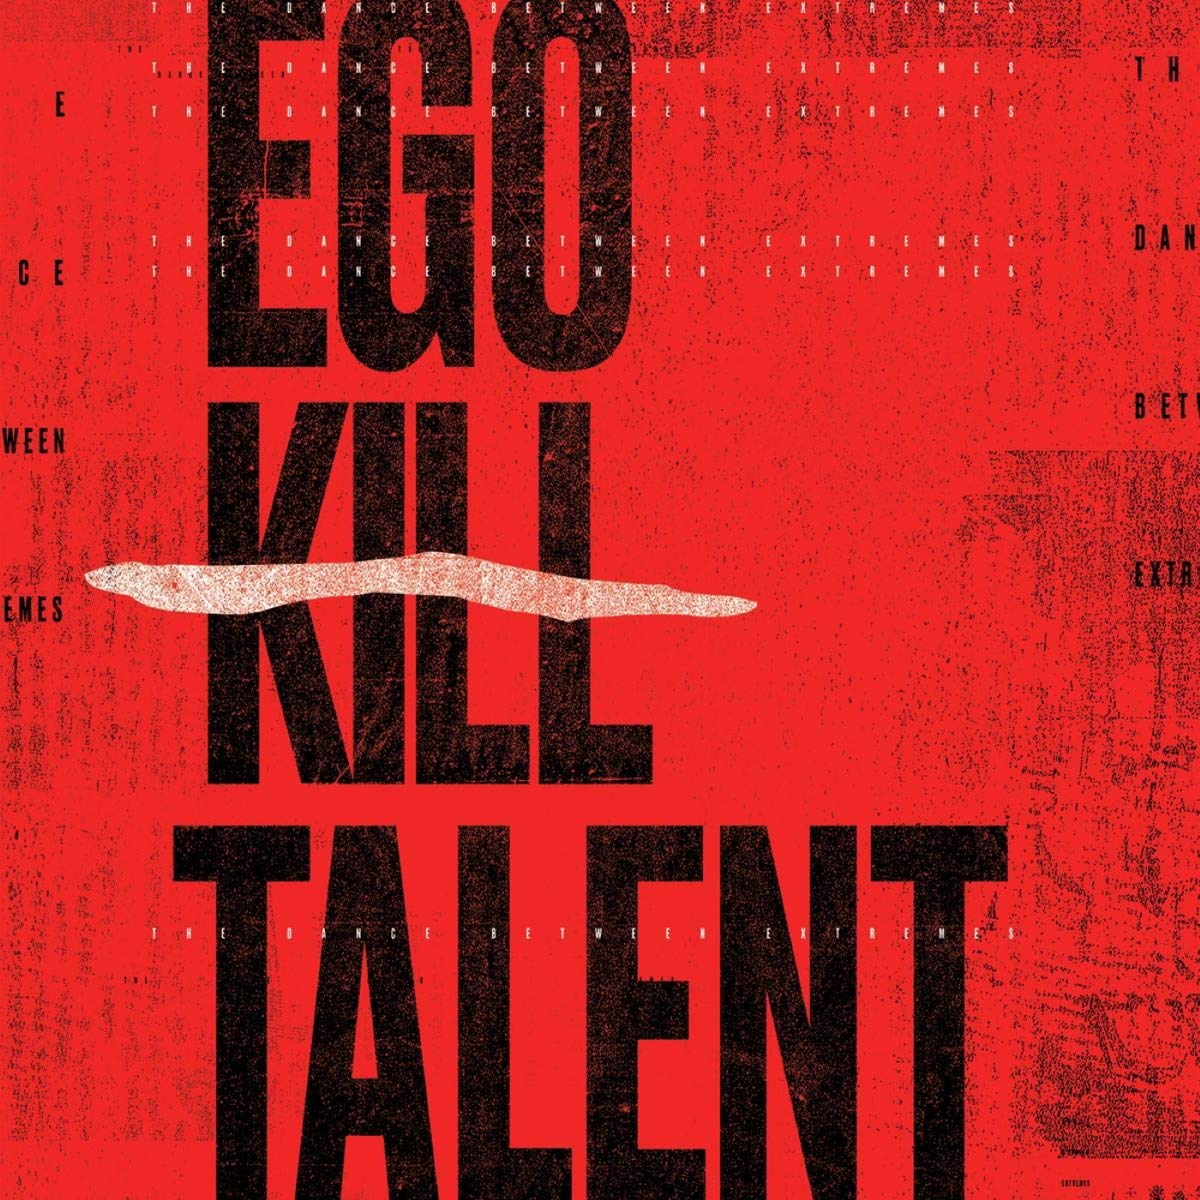 Ego Kill Talent - The Dance Between Extremes [Import LP]